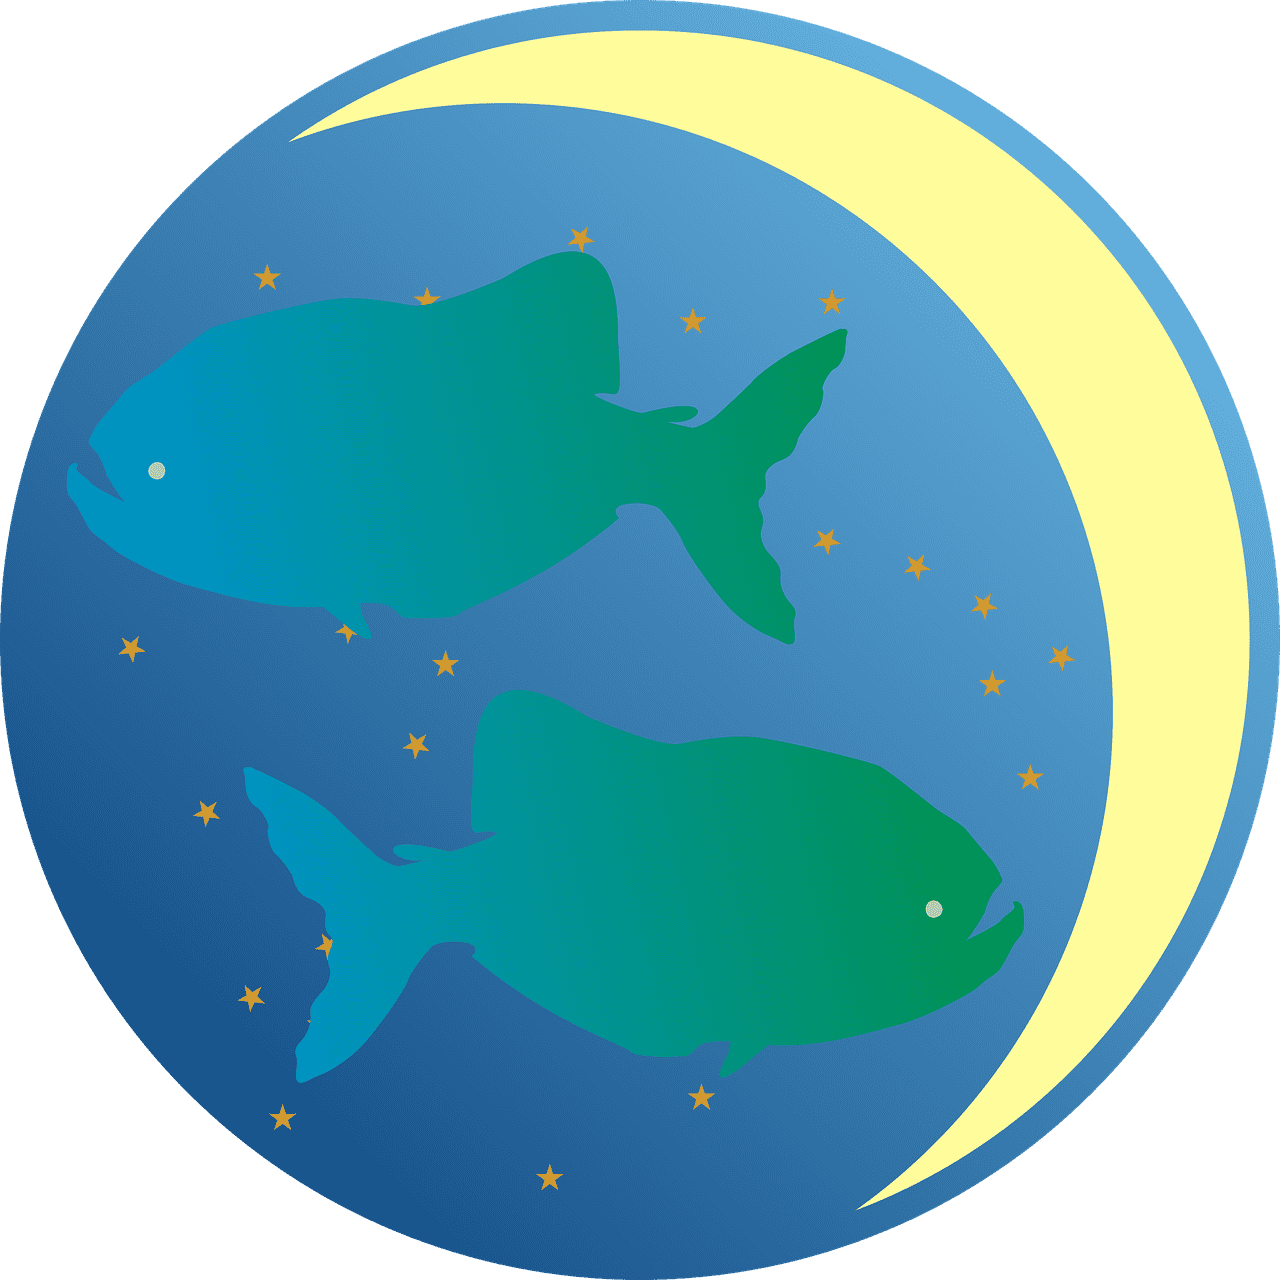 A depiction of the Pisces star sign   Photo: Pixabay/13smok